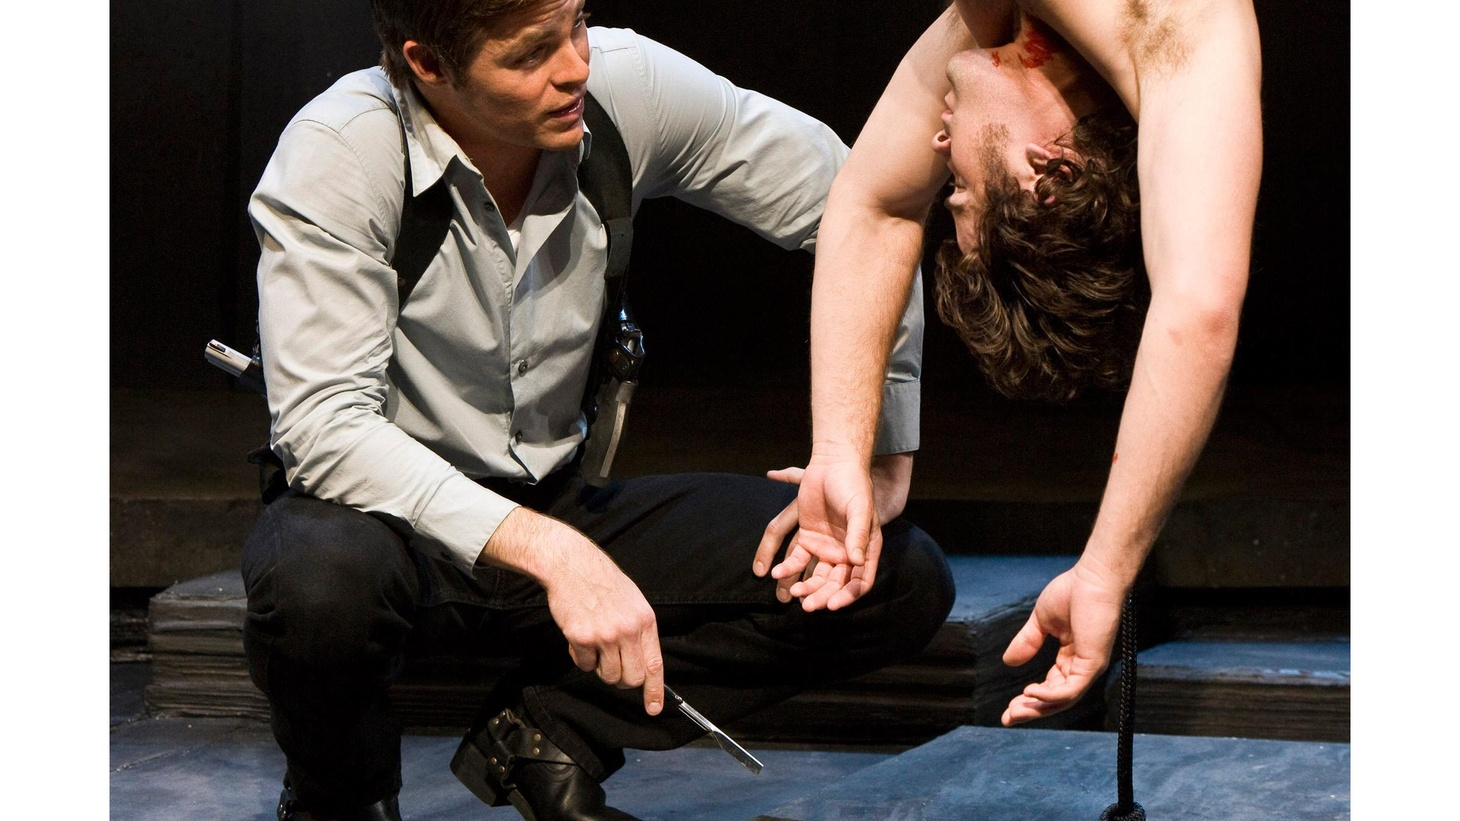 It's about two thirds of the way through Martin McDonagh's play The Lieutenant of Inishmore, and the stage is covered in blood. Not just a bit of blood - but literally gallons of blood. And not just blood. There's a severed head. And a torso...